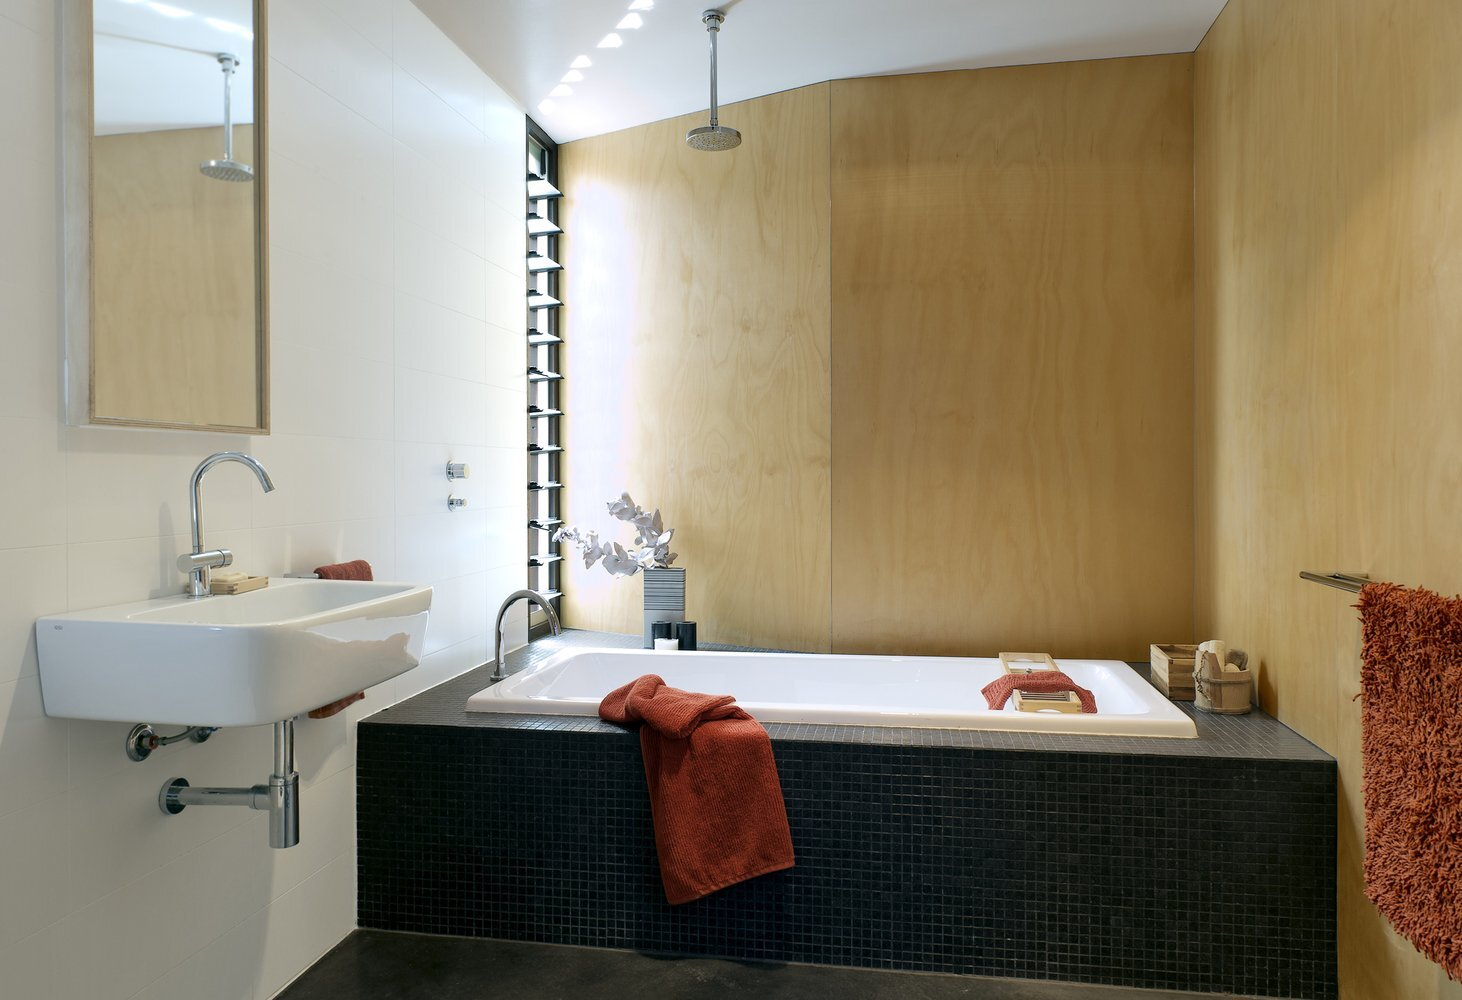 Gresley Monk Residence - Gresley Abas Architects + Justine Monk Design - Australia - Bathroom - Humble Homes